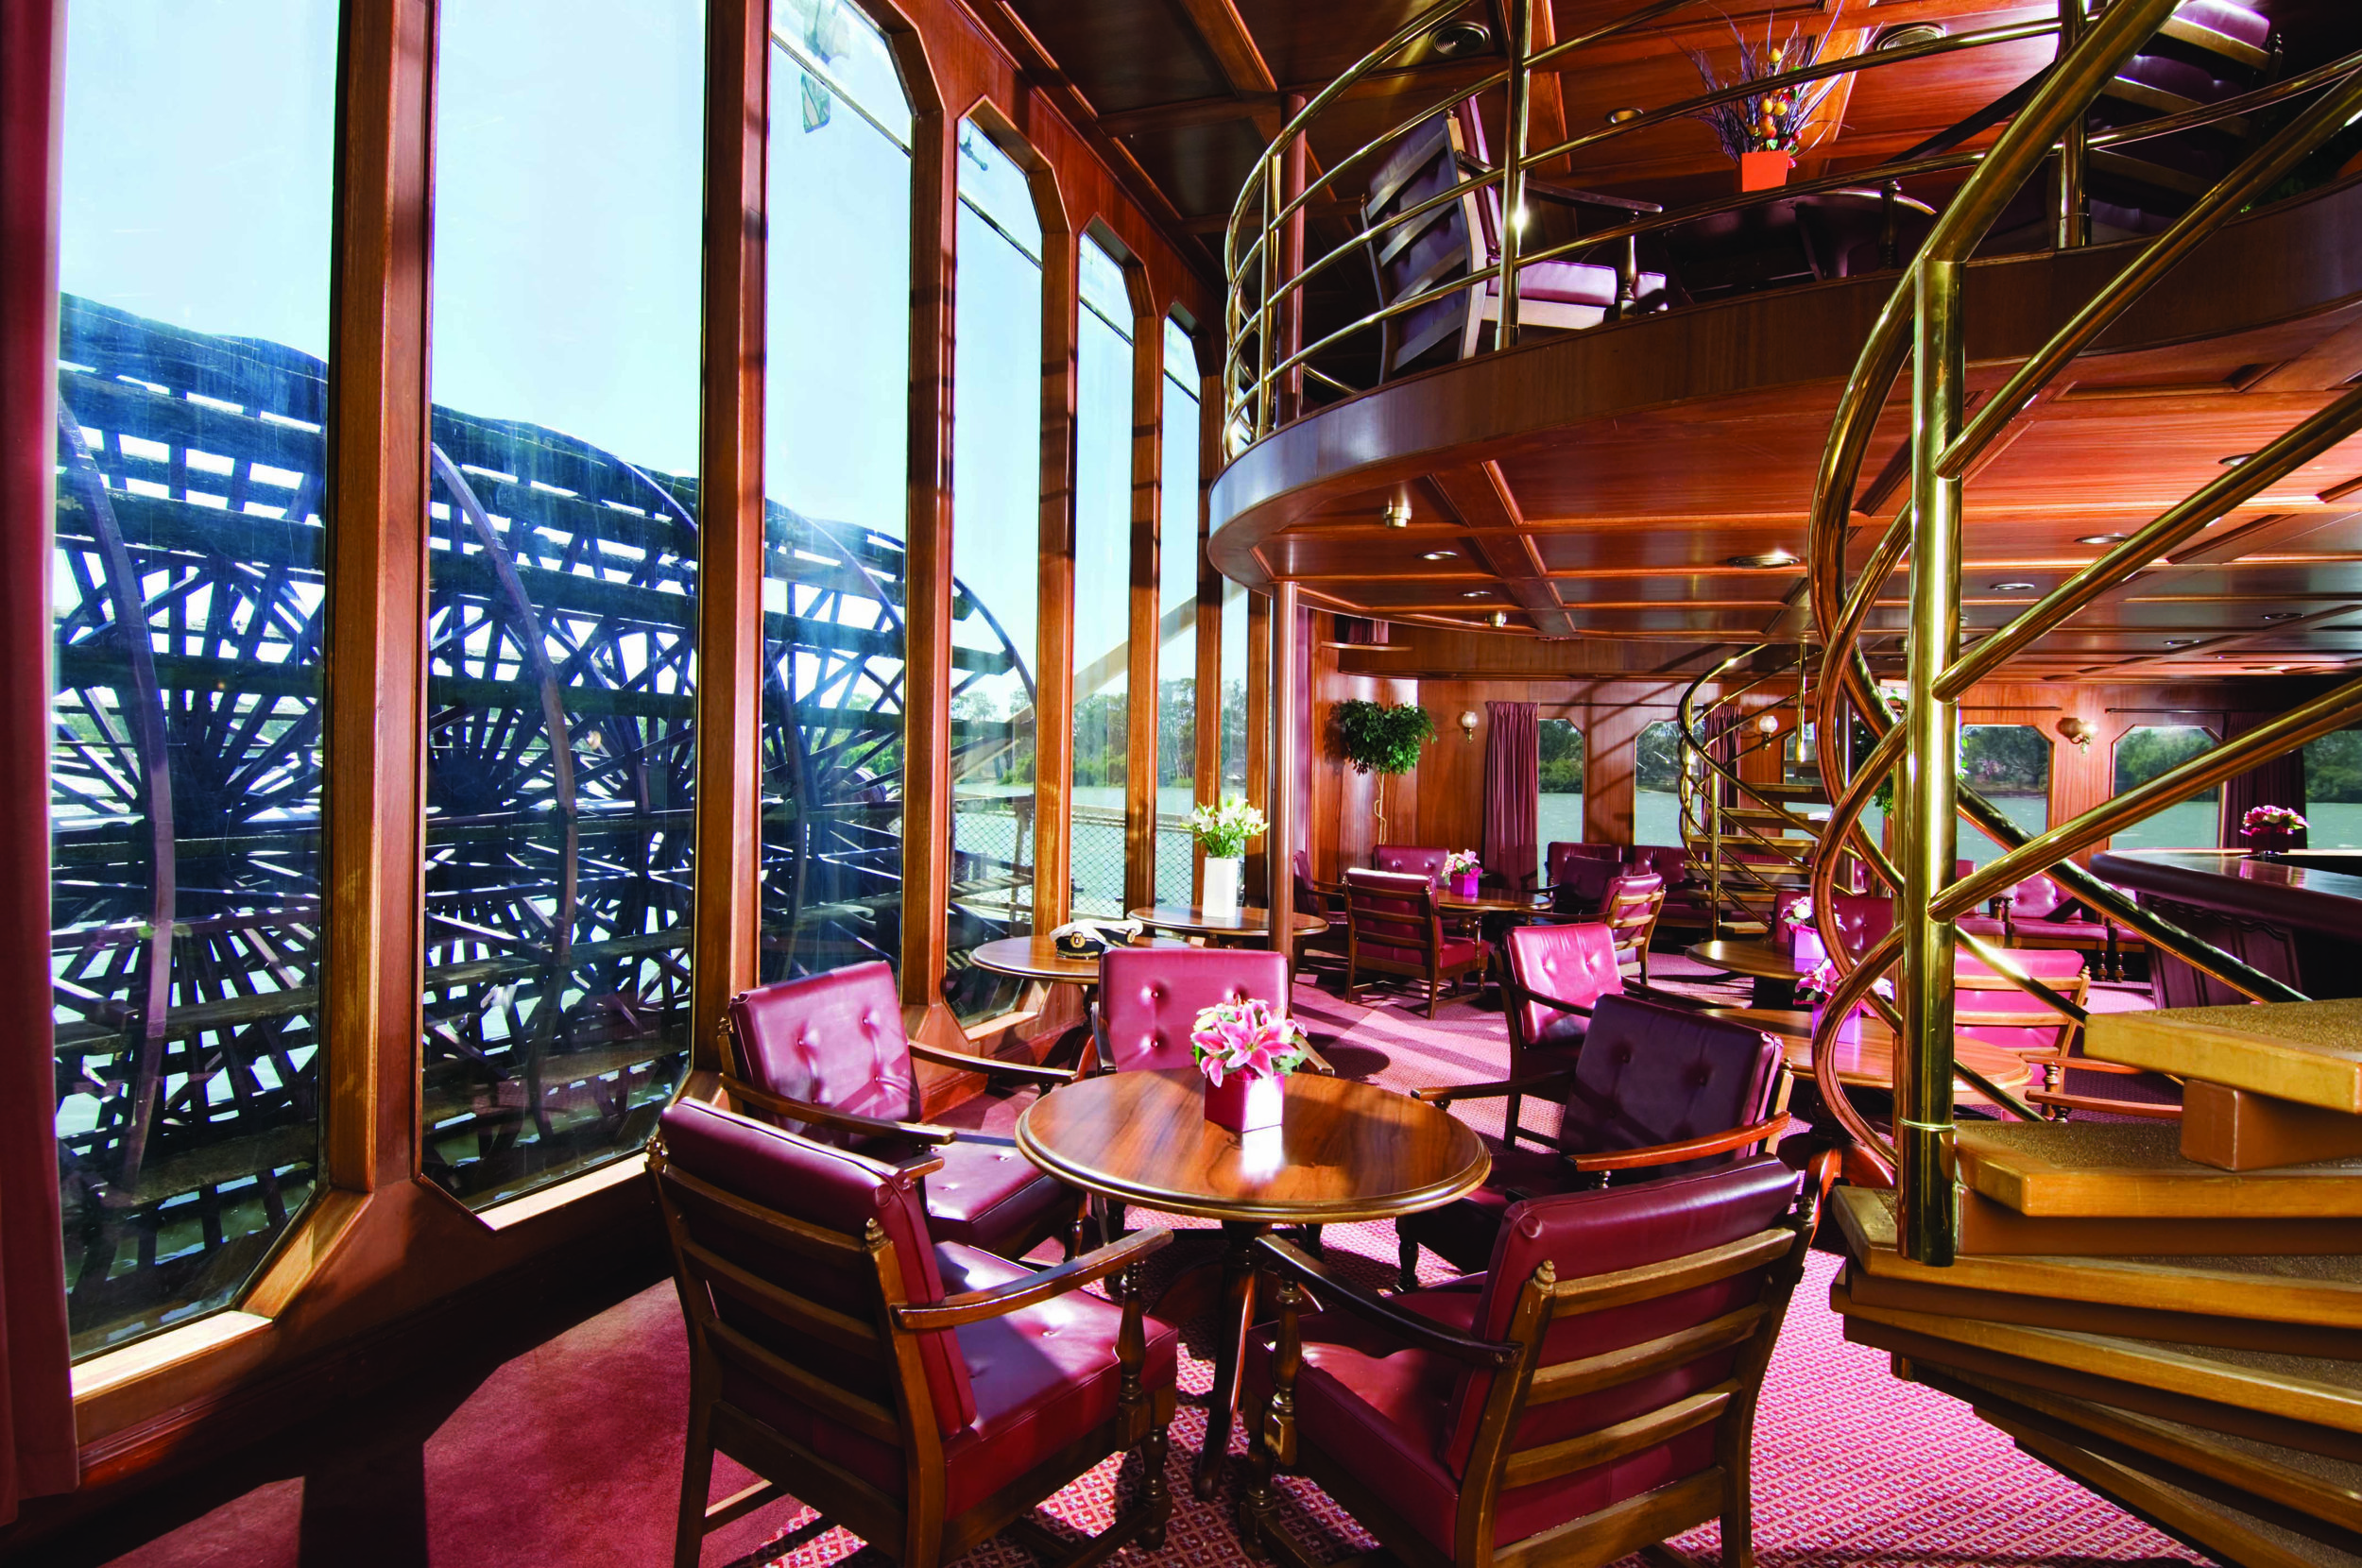 Package Inclusions:  - The package includes return flights from Newcastle to Adelaide,airport transfers, two nights accommodation at the Mayfair Hotel,located in the heart of the city and a full day Adelaide and HahndorfSightseeing tour. Then discover the Murray River's history onboardCaptain Cook Cruises, PS Murray Princess (picturedabove). The three night cruise includes accommodation, all meals(buffet & a la carte), guided nature walks, onshore excursions,Captains Dinner and Cocktail Party, live entertainment, 24 hr self servicetea and coffee bar and scenic coach transfers from and to Adelaide. Extend to a four or seven night cruise and upgrades to outside cabins or staterooms available.Contact us to add more nights, room upgrades, add more persons, a rental car or other optional activitiesPrices starting from:$1879* pp/twin share ex Newcastle★★★★★